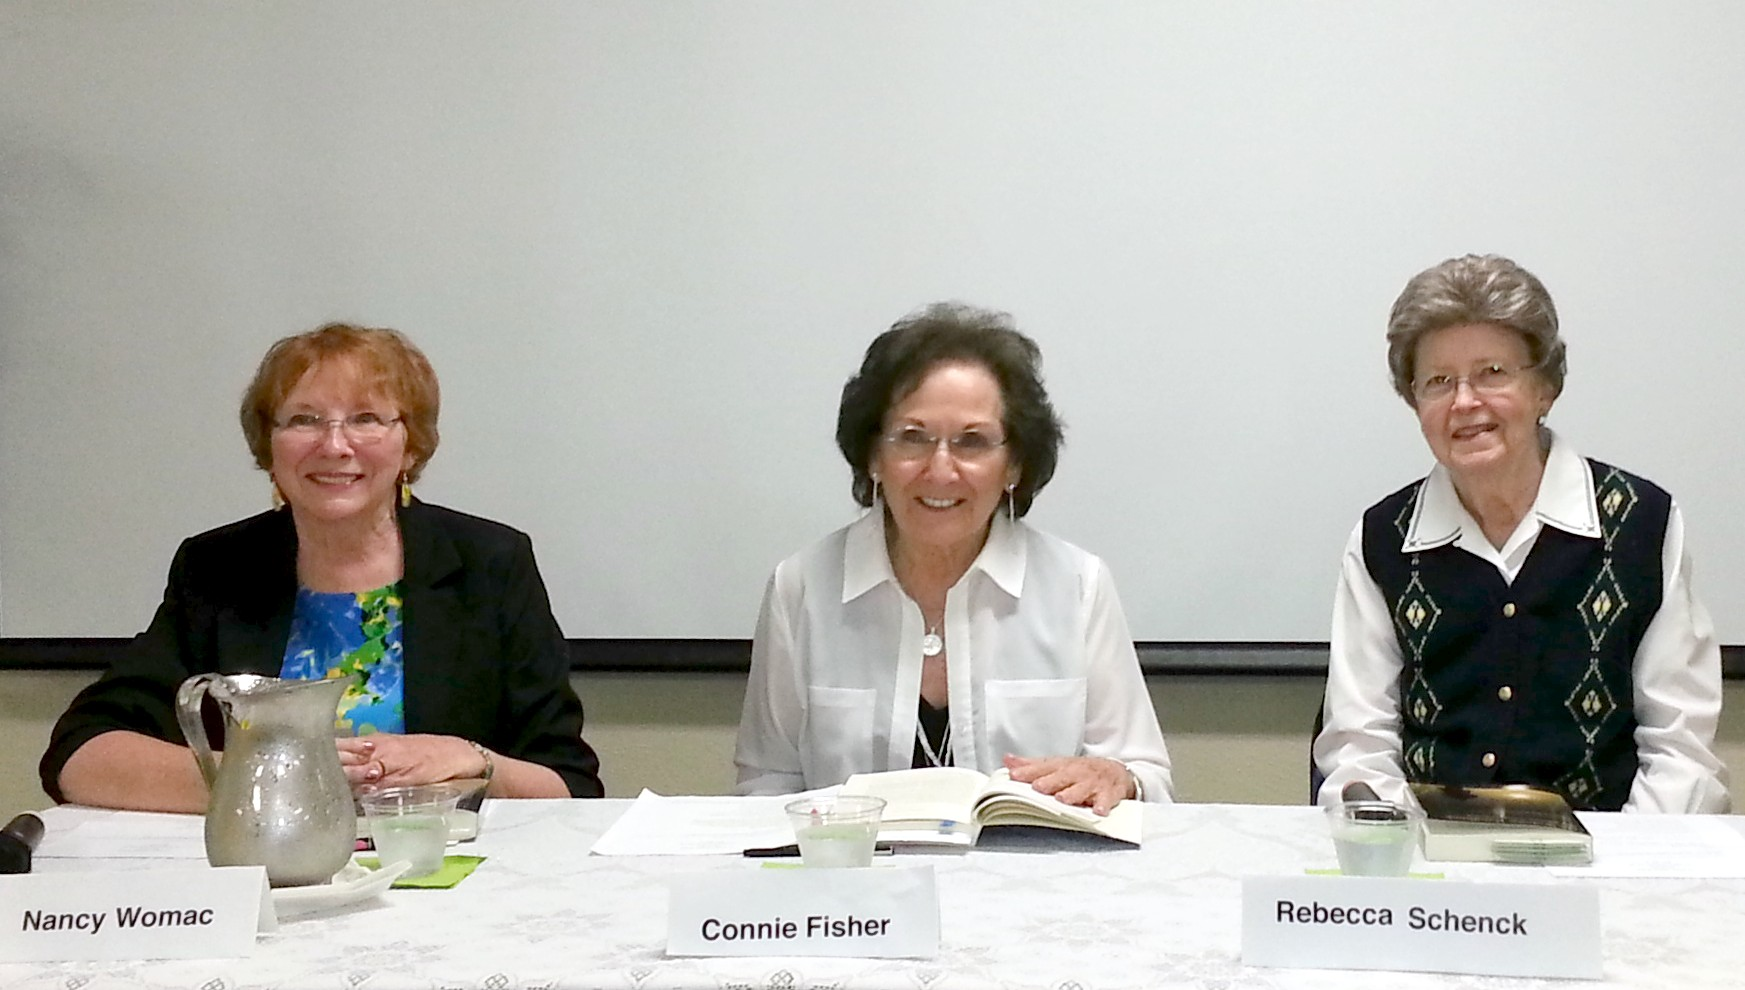 Nancy Womack, Connie Fisher, and Rebecca Schenck